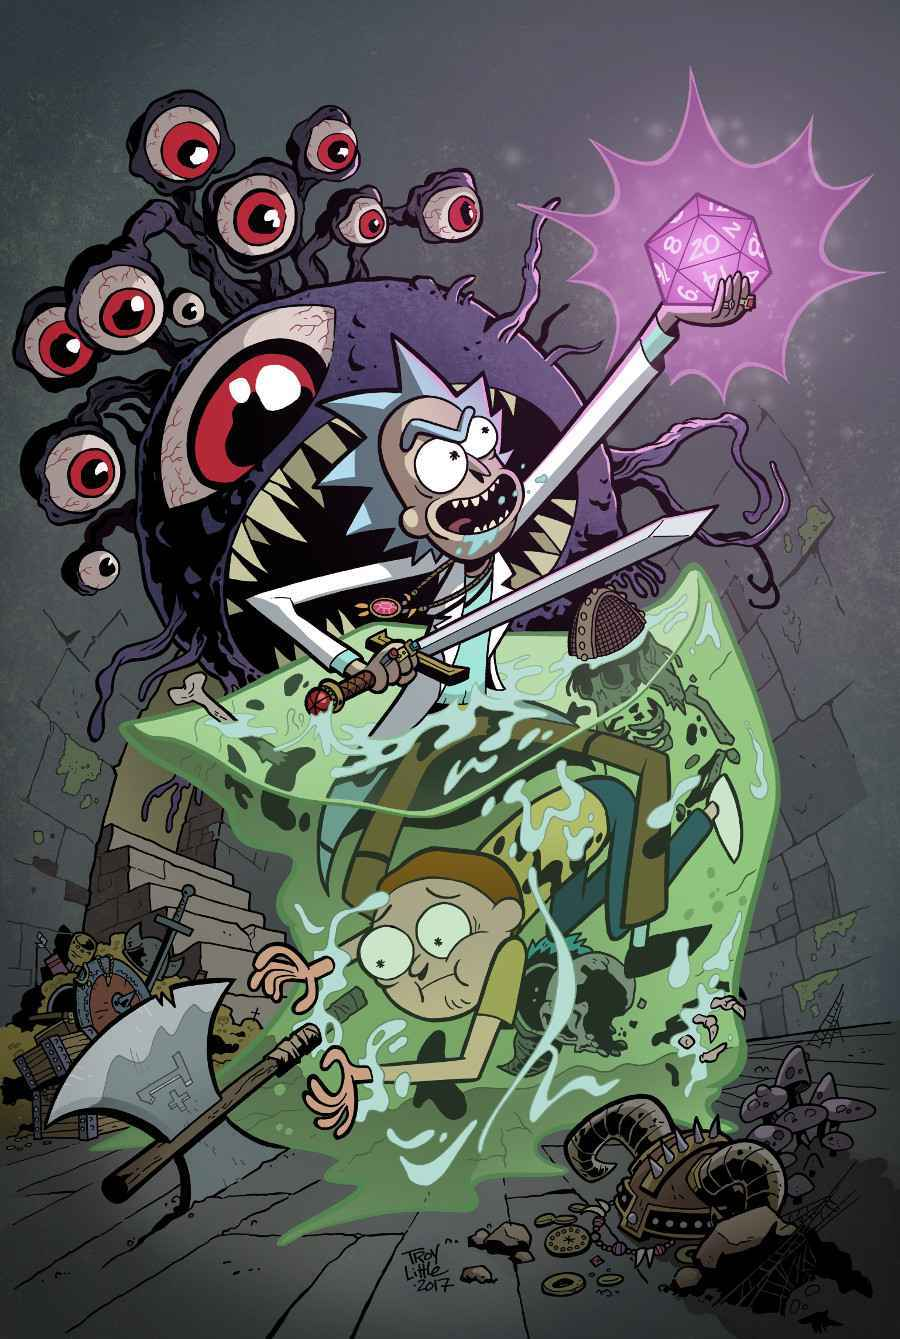 rick-and-morty-dungeons-and-dragons-crossover-1100299.jpeg